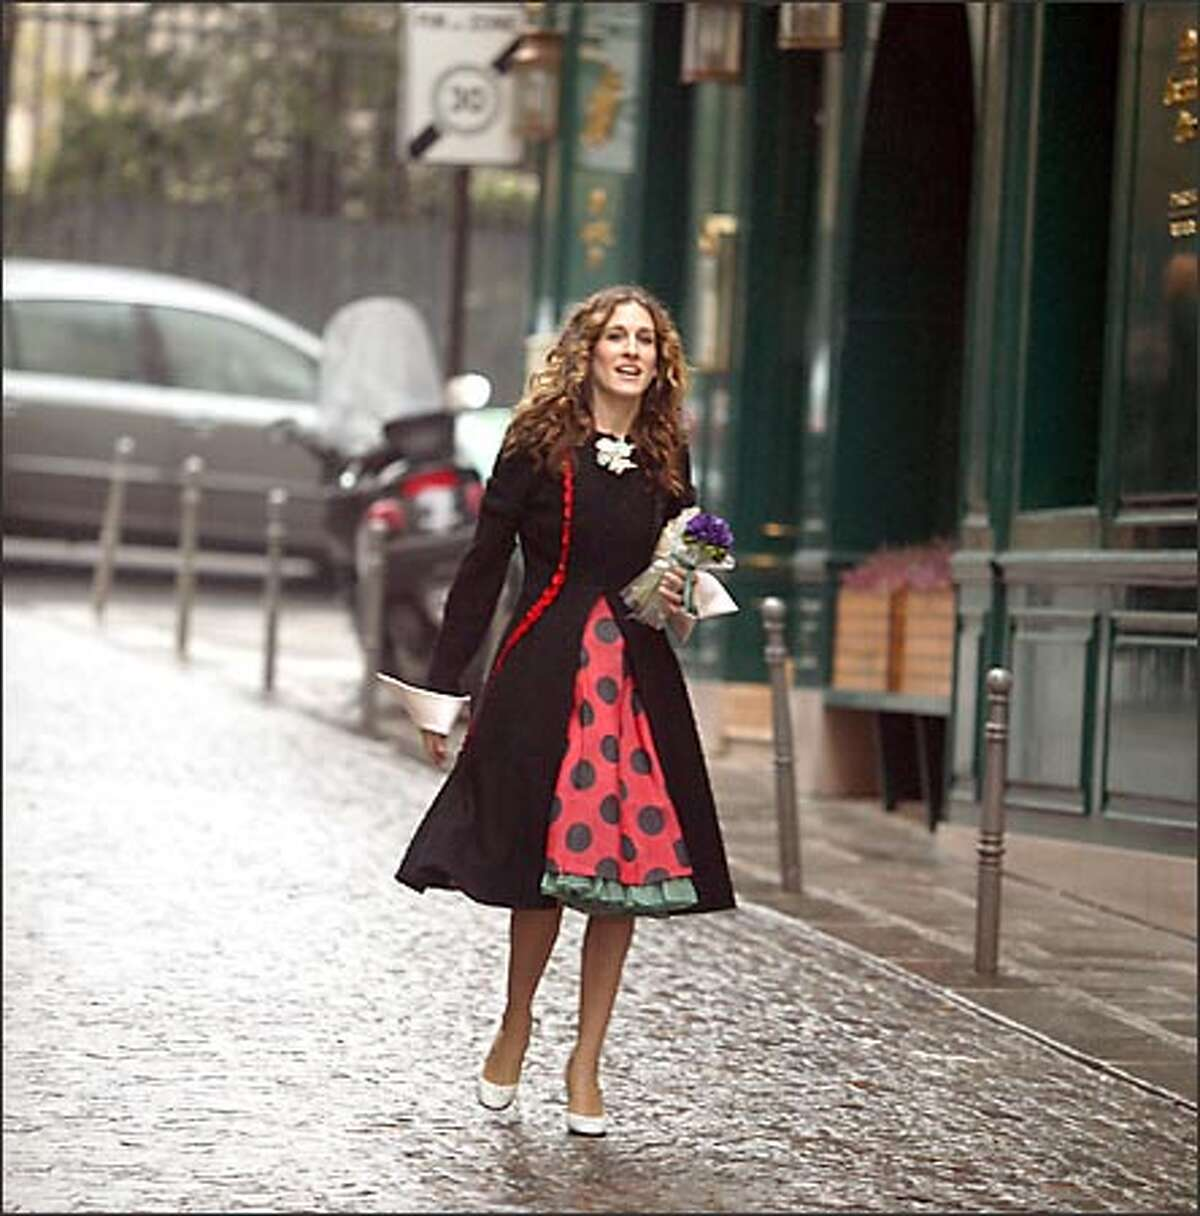 Today, viewers are wondering if Carrie Bradshaw (Sarah Jessica Parker) made the right choice last night.